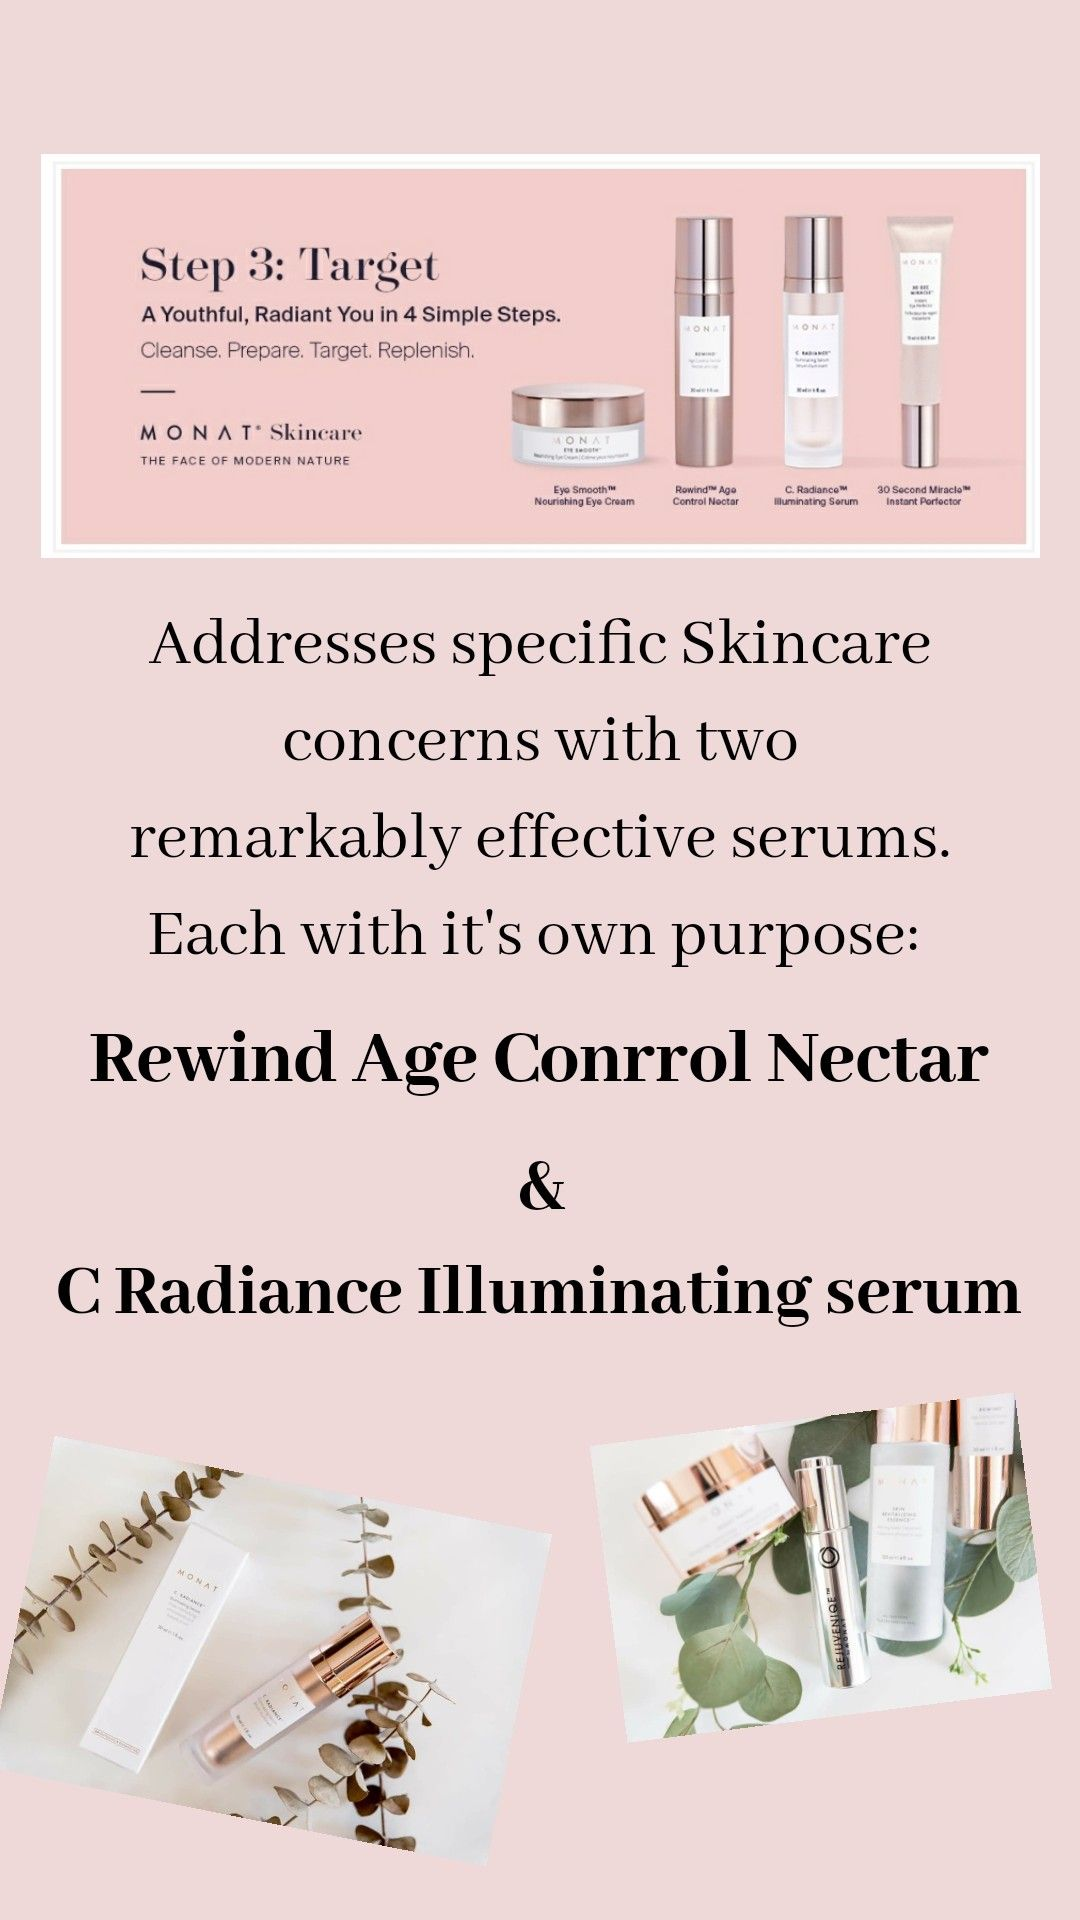 Step 3 Target Monat Skincare Monat Products Monat Market Partner In 2020 Skin Care Monat Monat Before And After